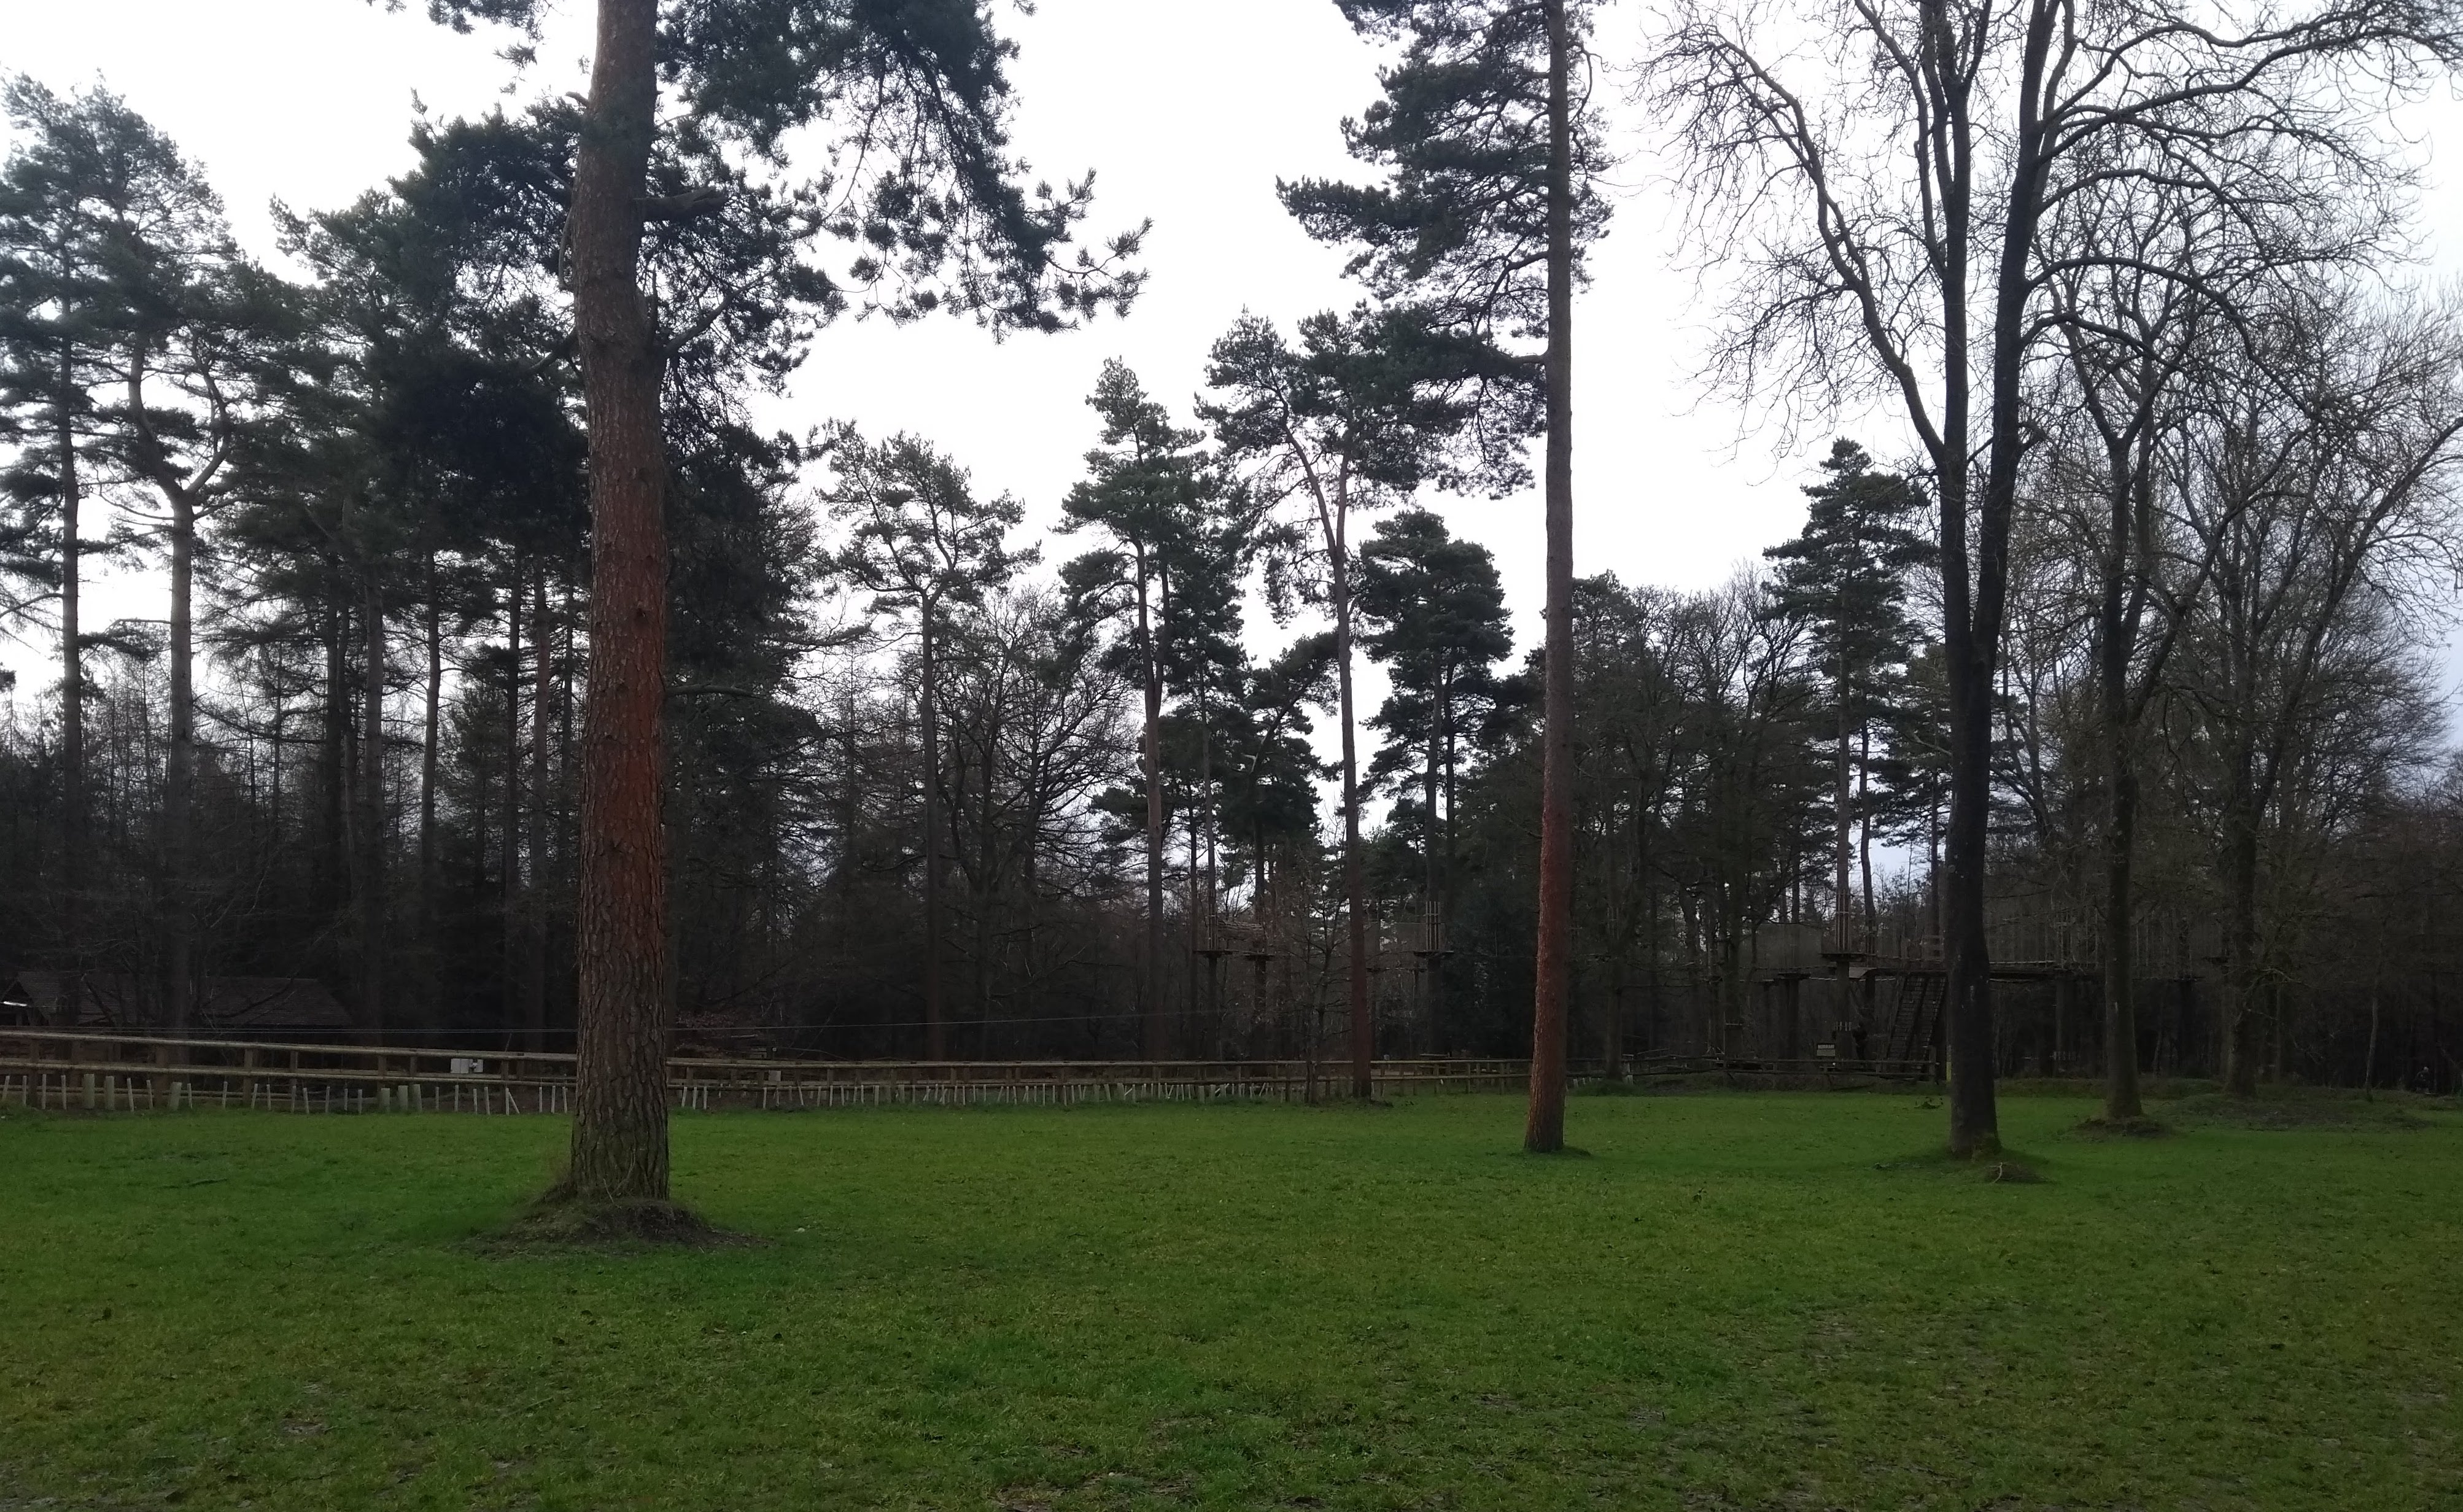 Tall trees and green grass in the park